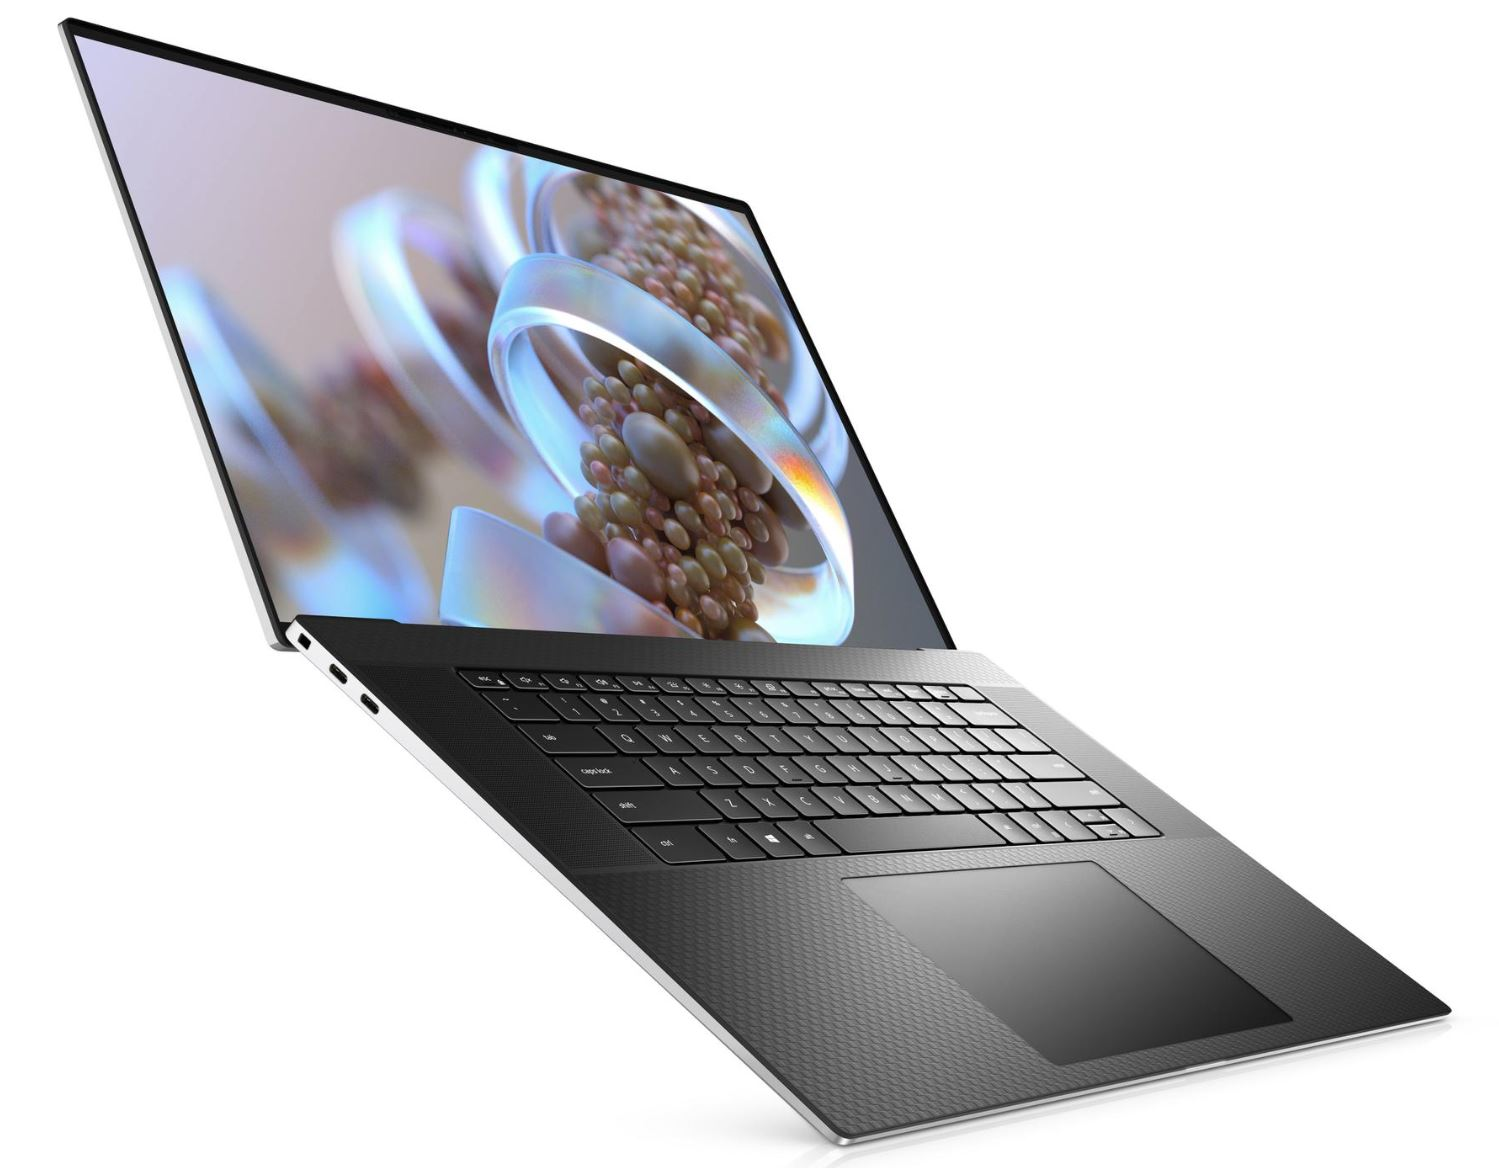 Dell takes on Apple Mac Book Pro 16 with the new XPS 17 2